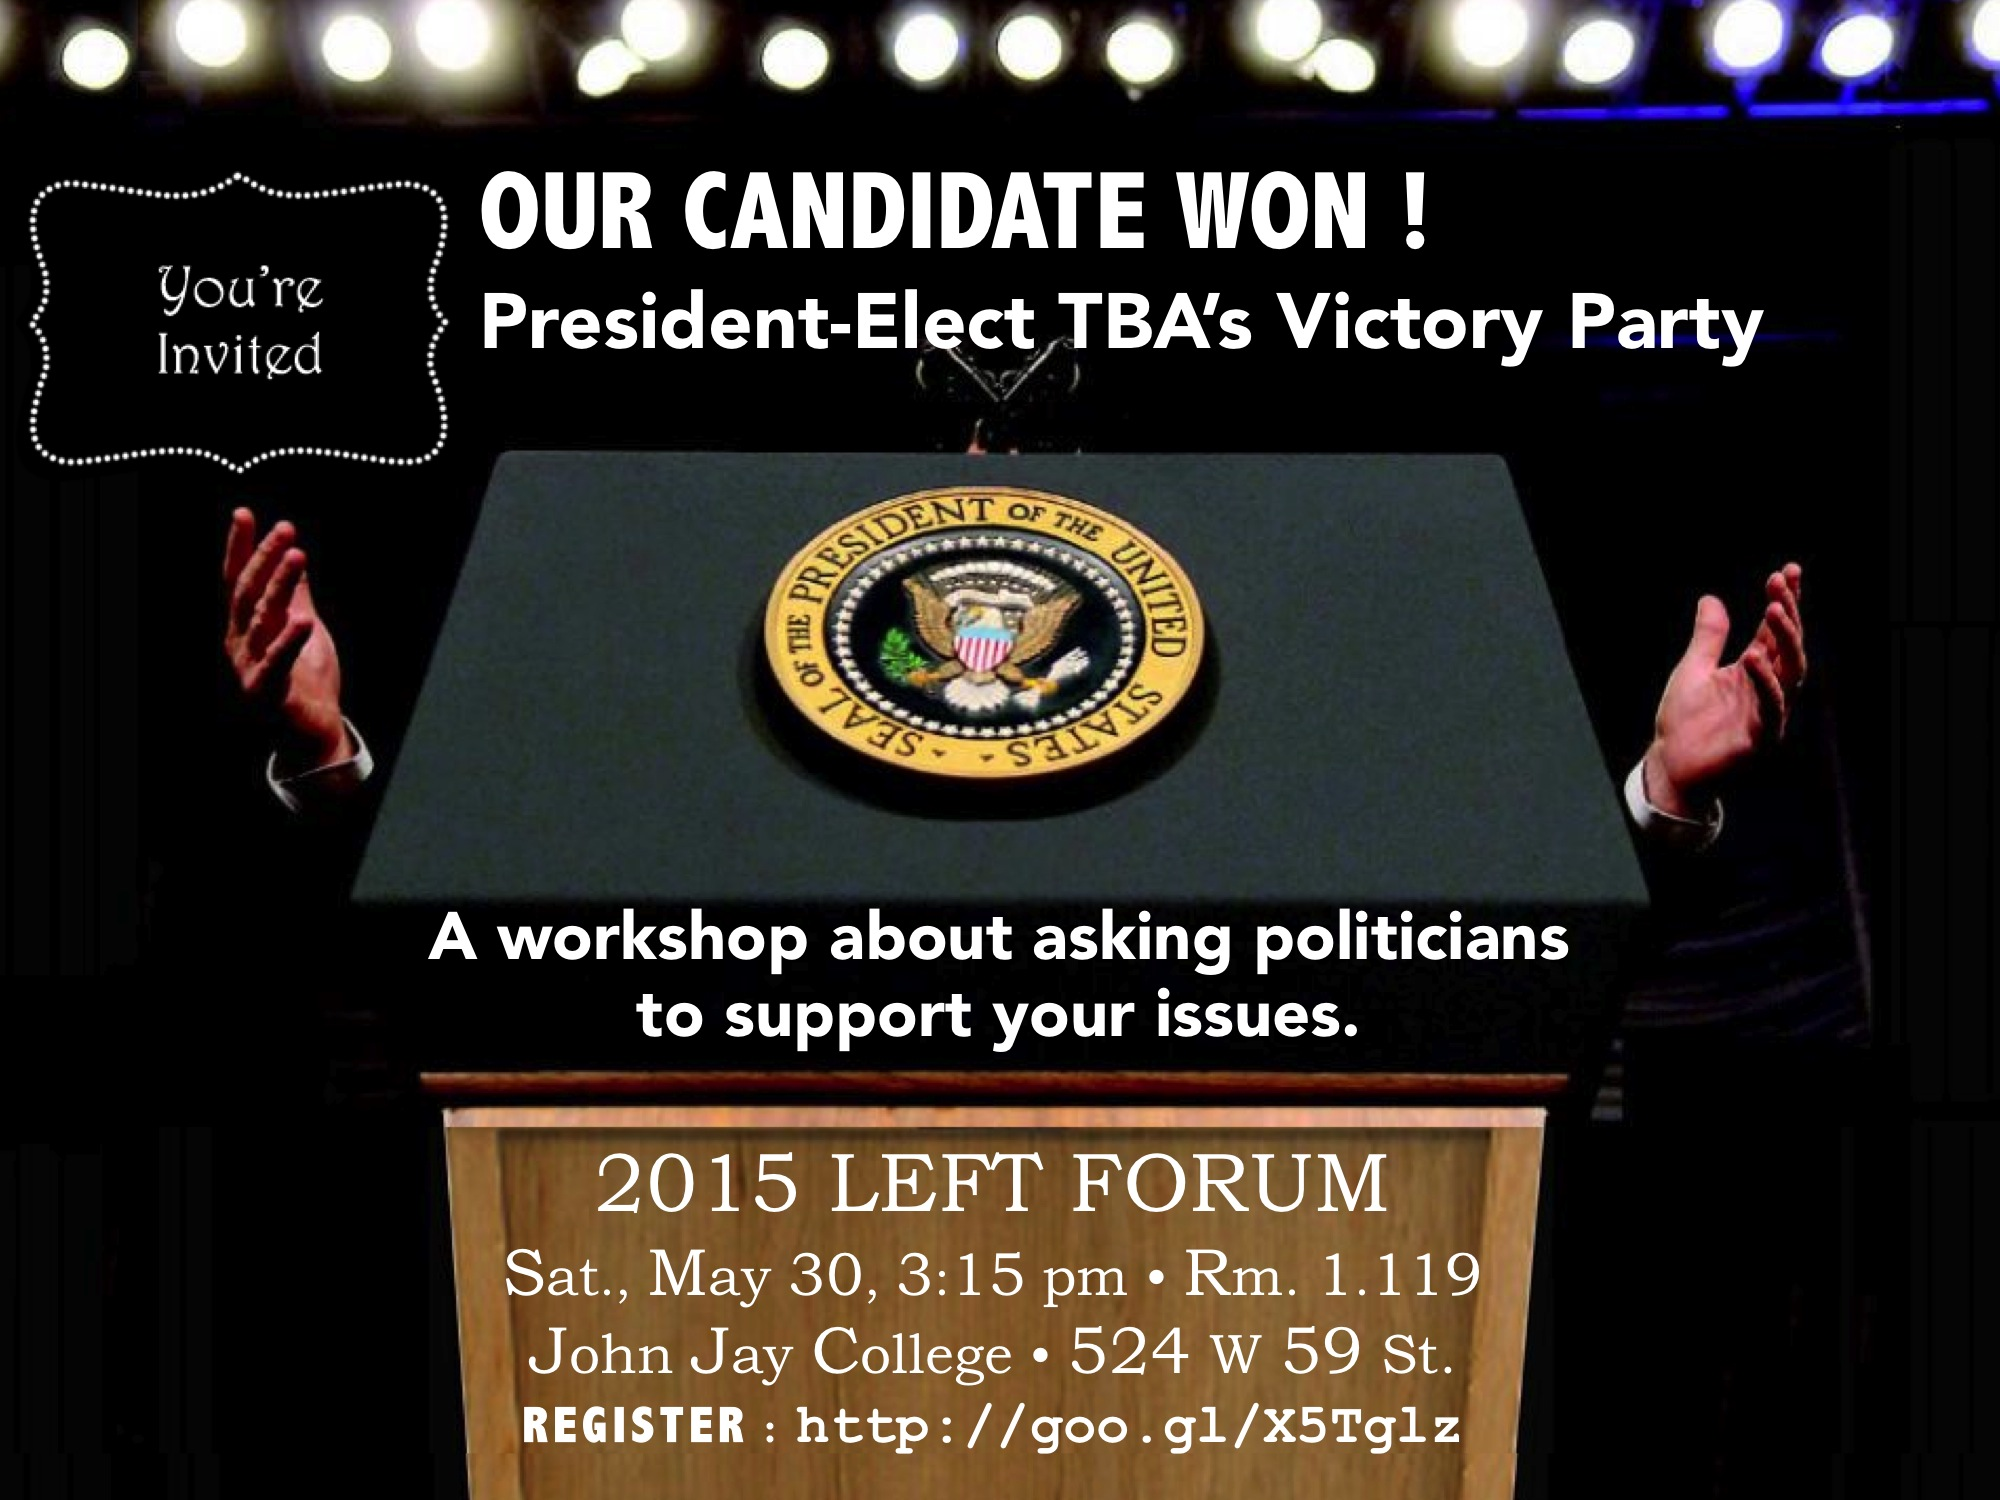 REGISTER TO ATTEND   OUR CANDIDATE WON , A  LEFT FORUM  WORKSHOP ABOUT MAKING POLITICAL DEMANDS.  (SPONSORED)